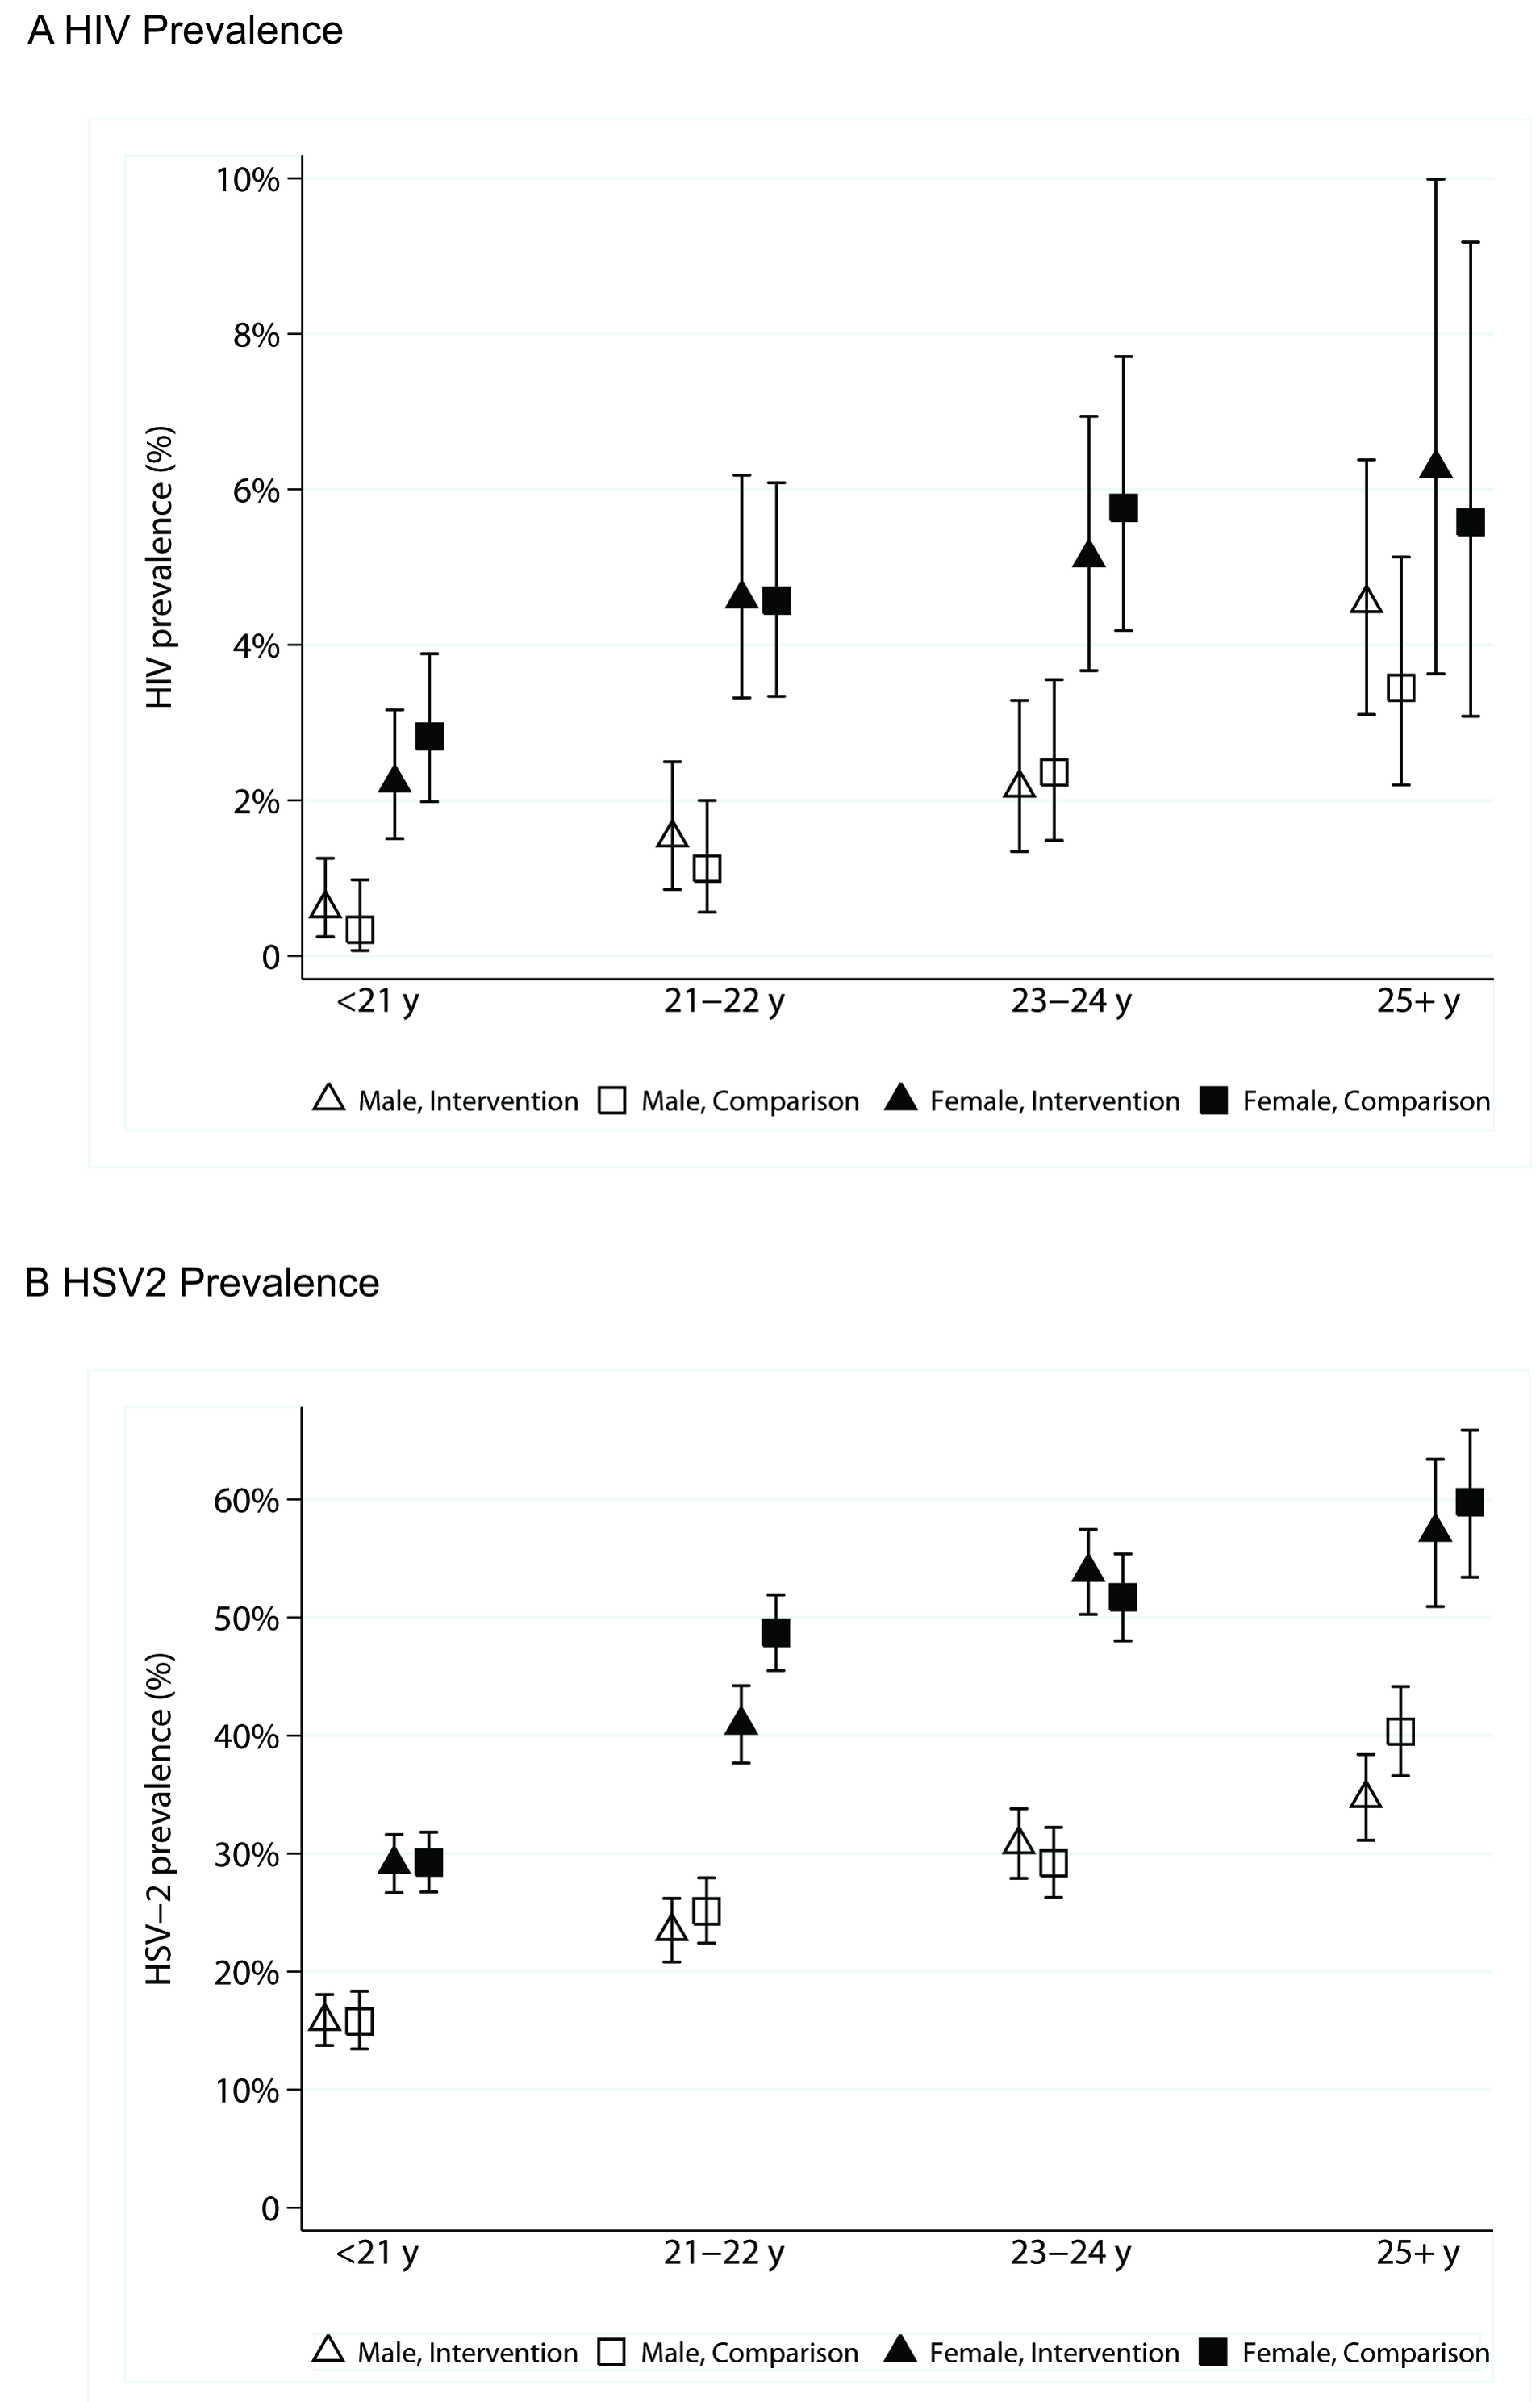 HIV and HSV-2 prevalence and 95% confidence intervals, by sex, age group, and arm of trial.